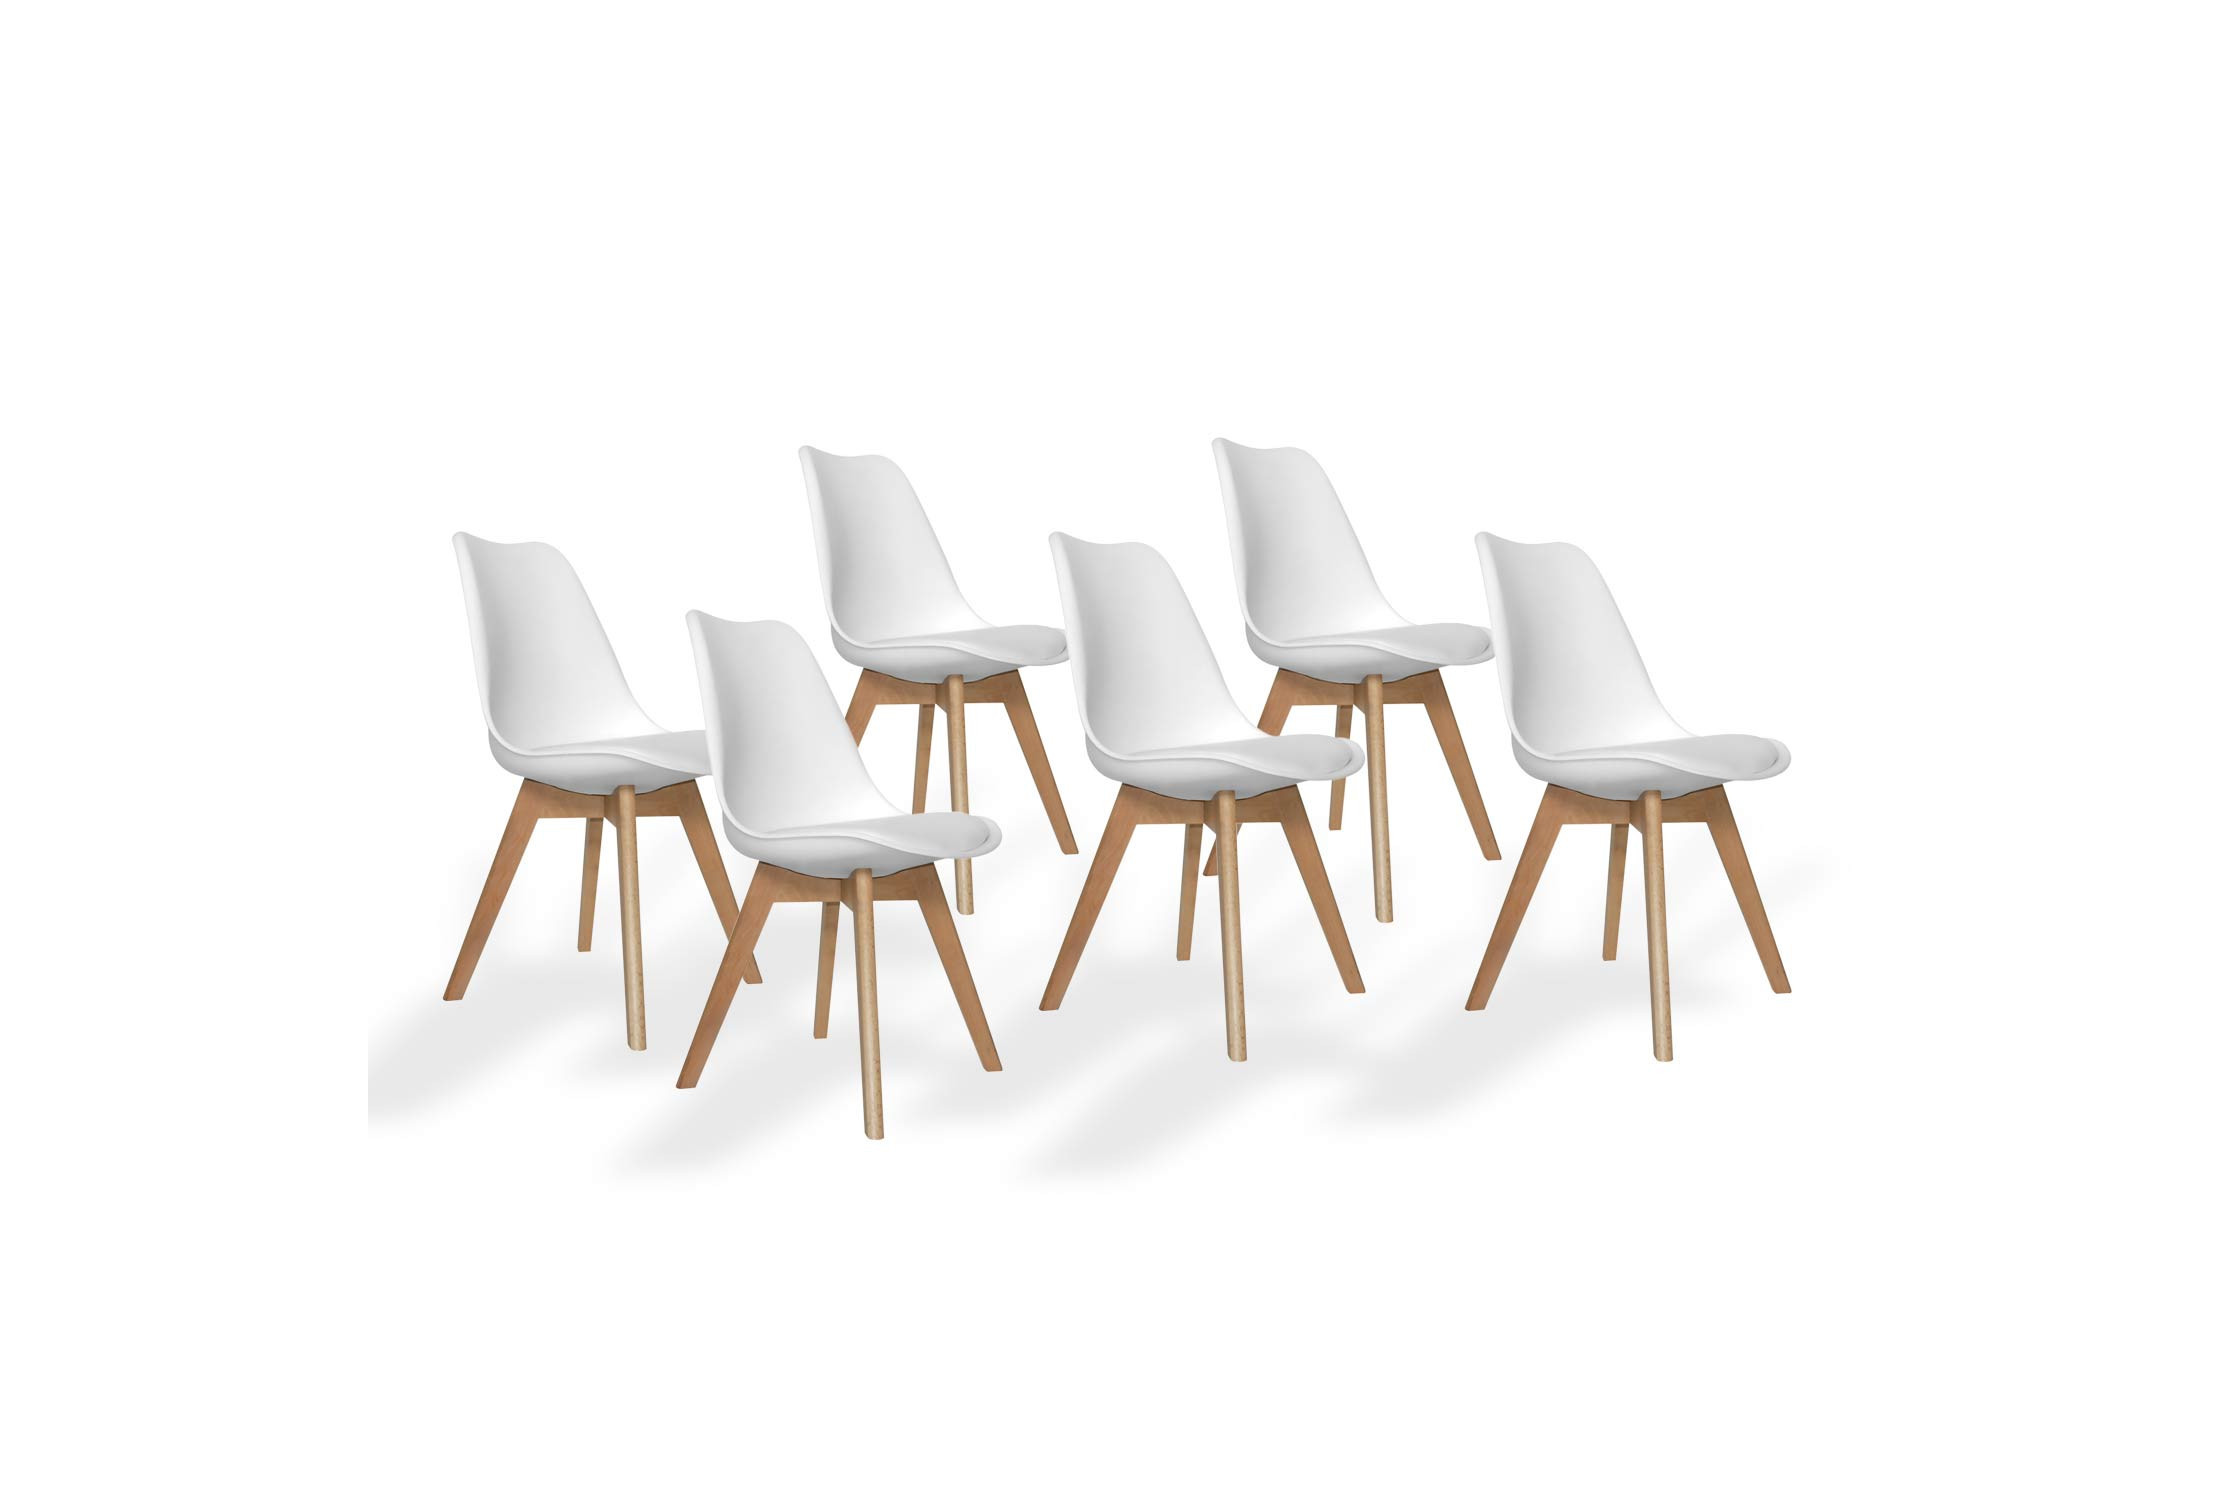 PACK 6 SILLAS NEW TOWER WOOD BLANCAS EXTRA QUALITY